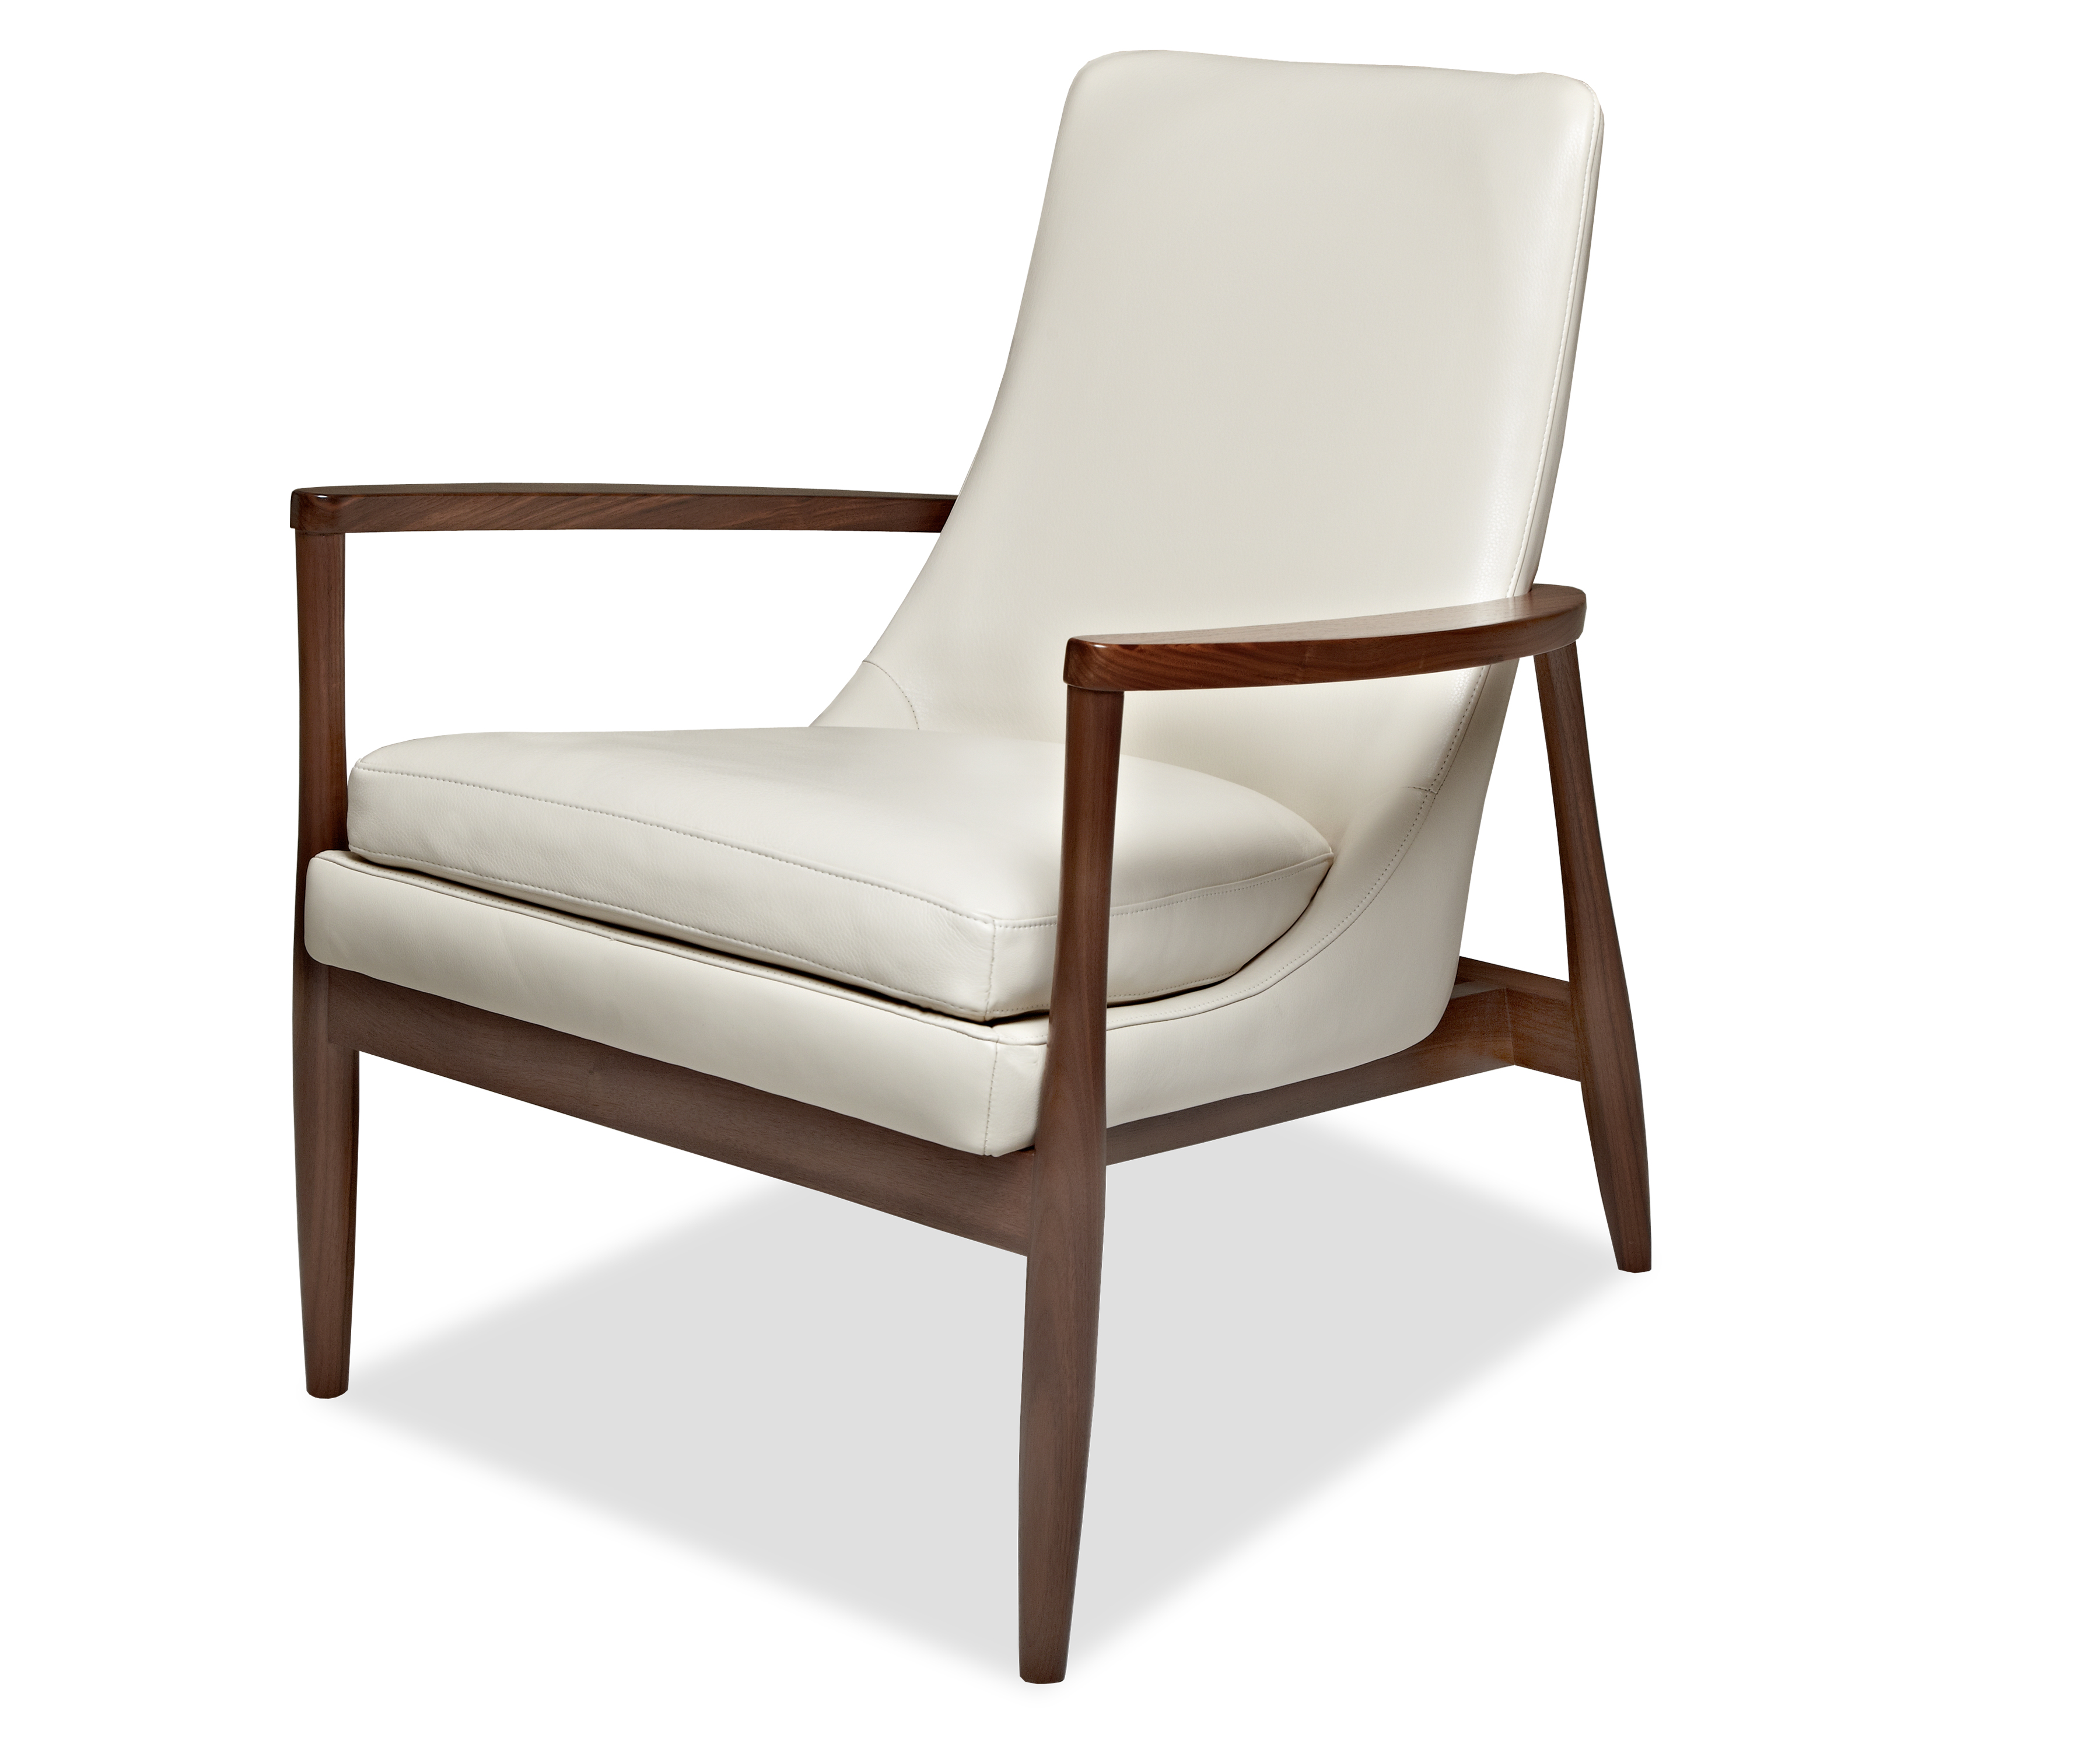 American Leather solid walnut collection Aaron chair